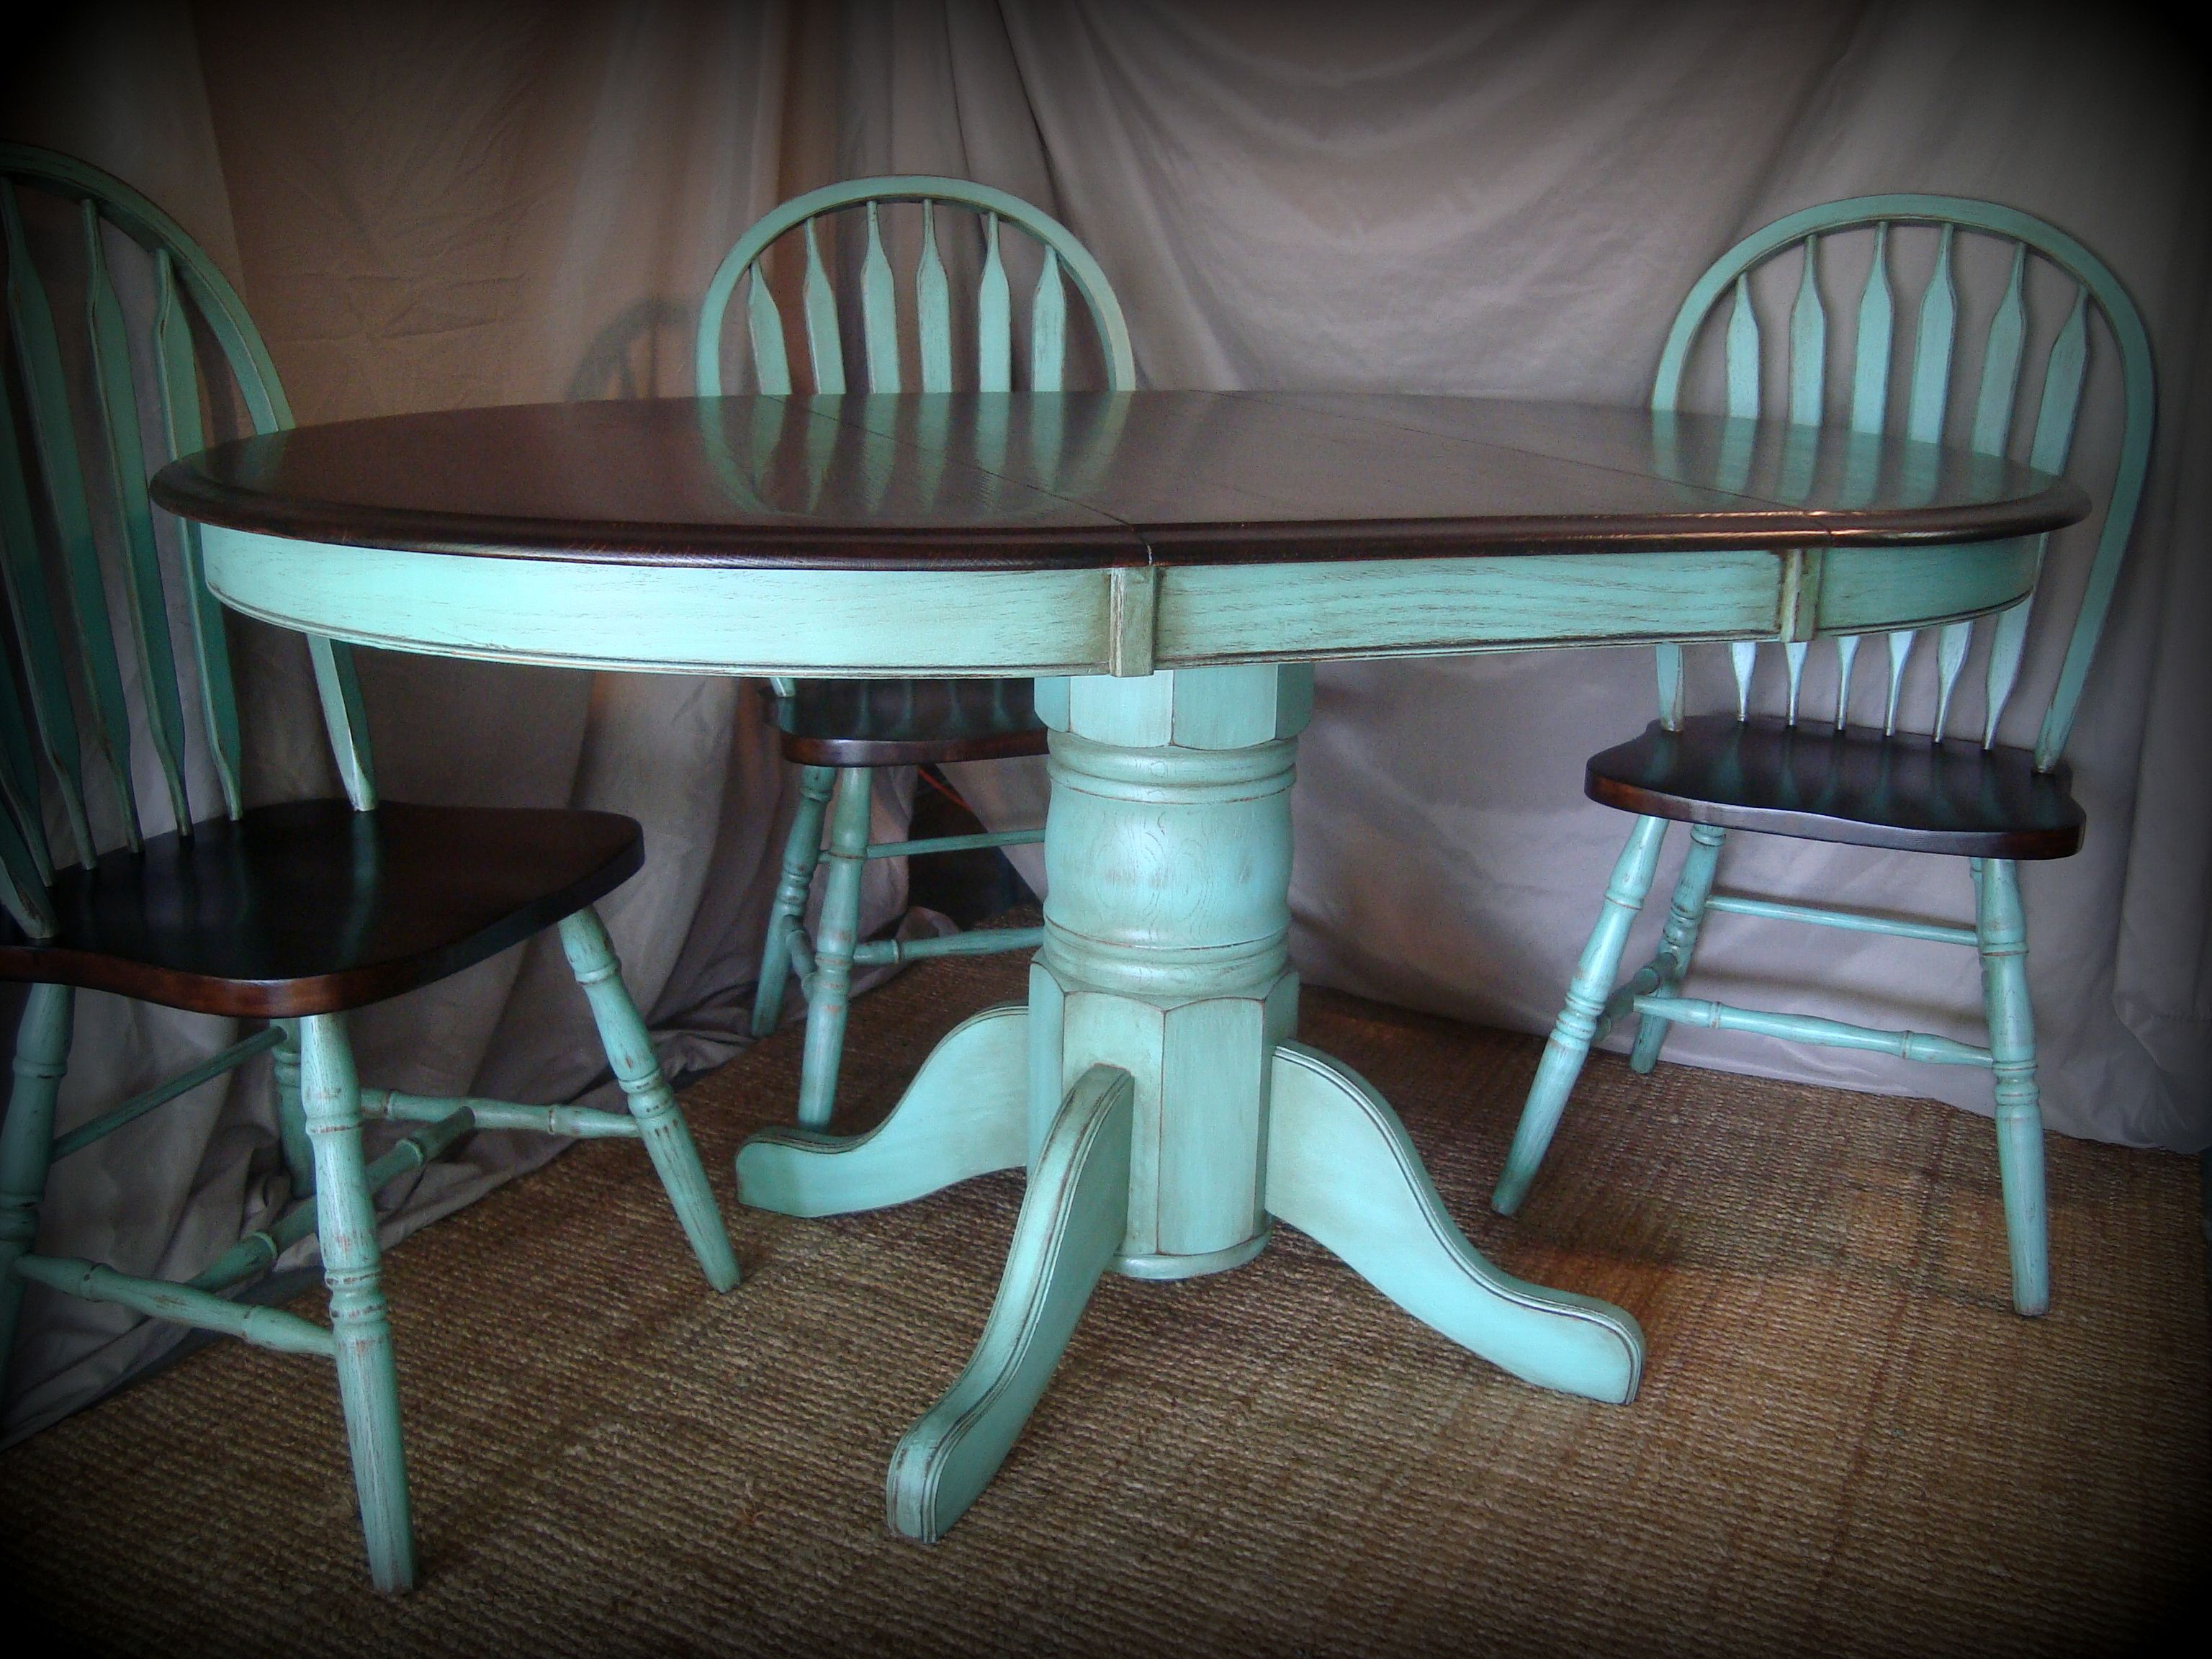 turquoise kitchen tables beachy kitchen table kitchen table refinishing ideas pictures stained the table top and chairs with dark walnut